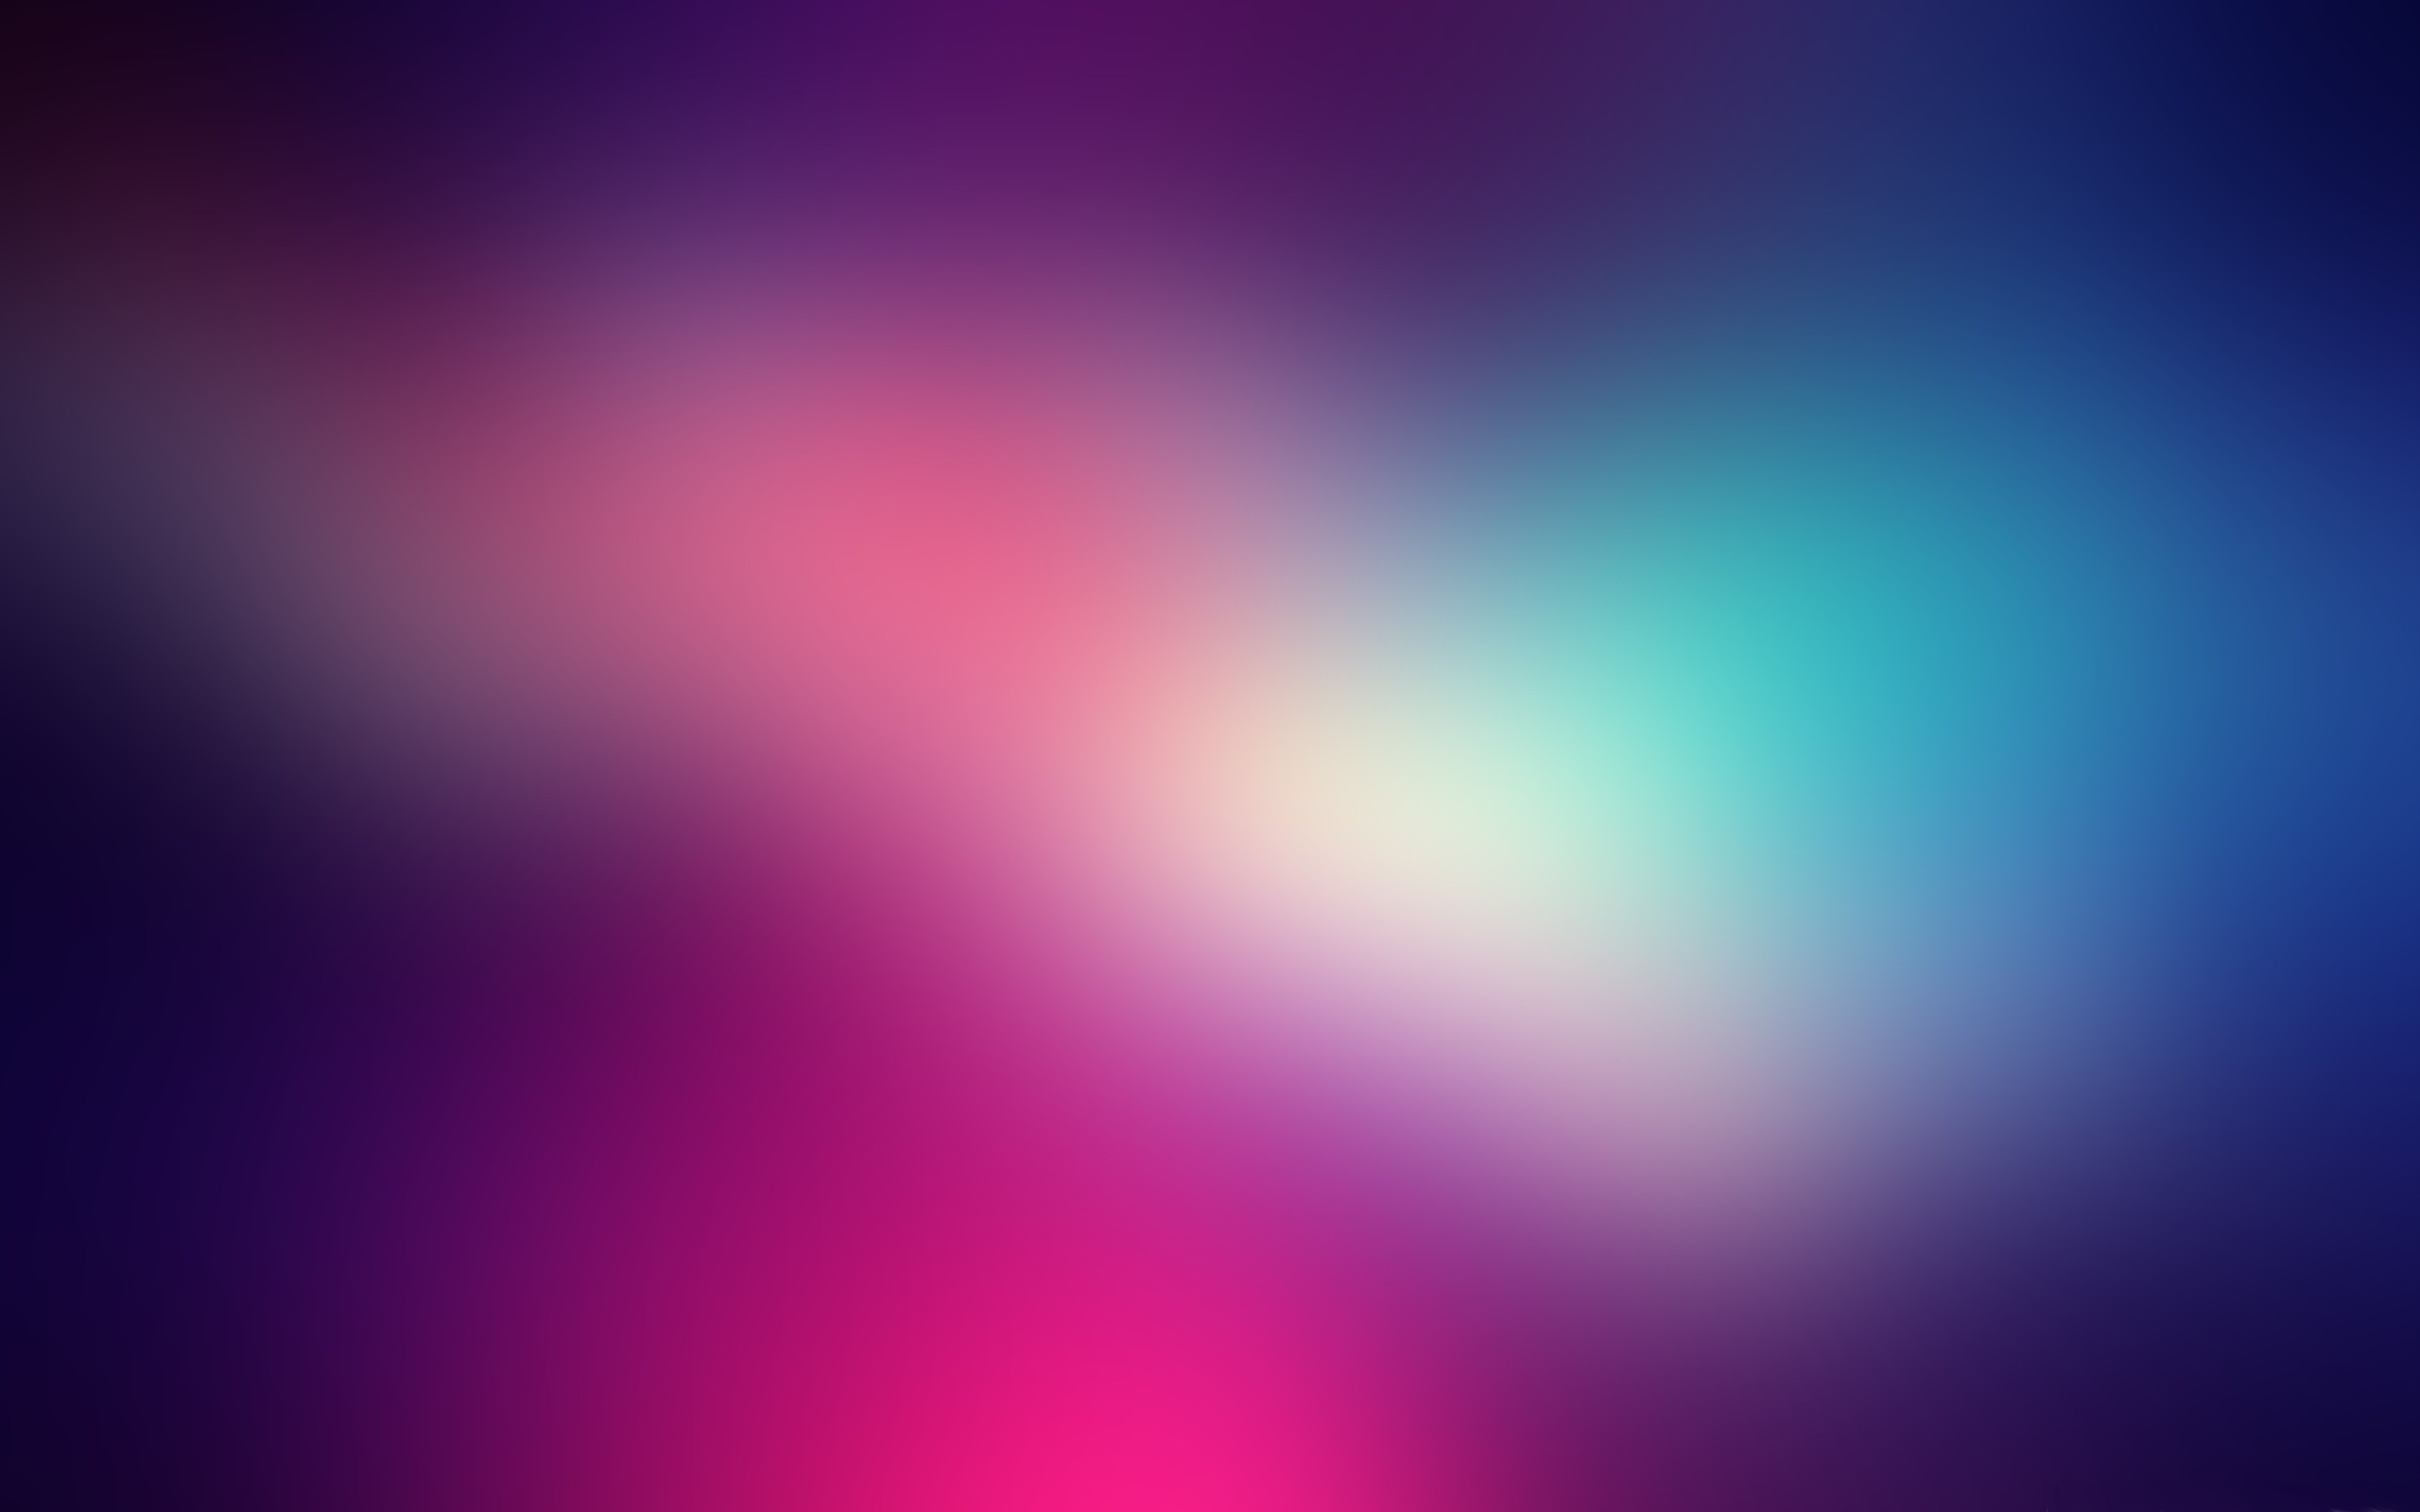 ios purple wallpaper | 2560x1600 | #32990